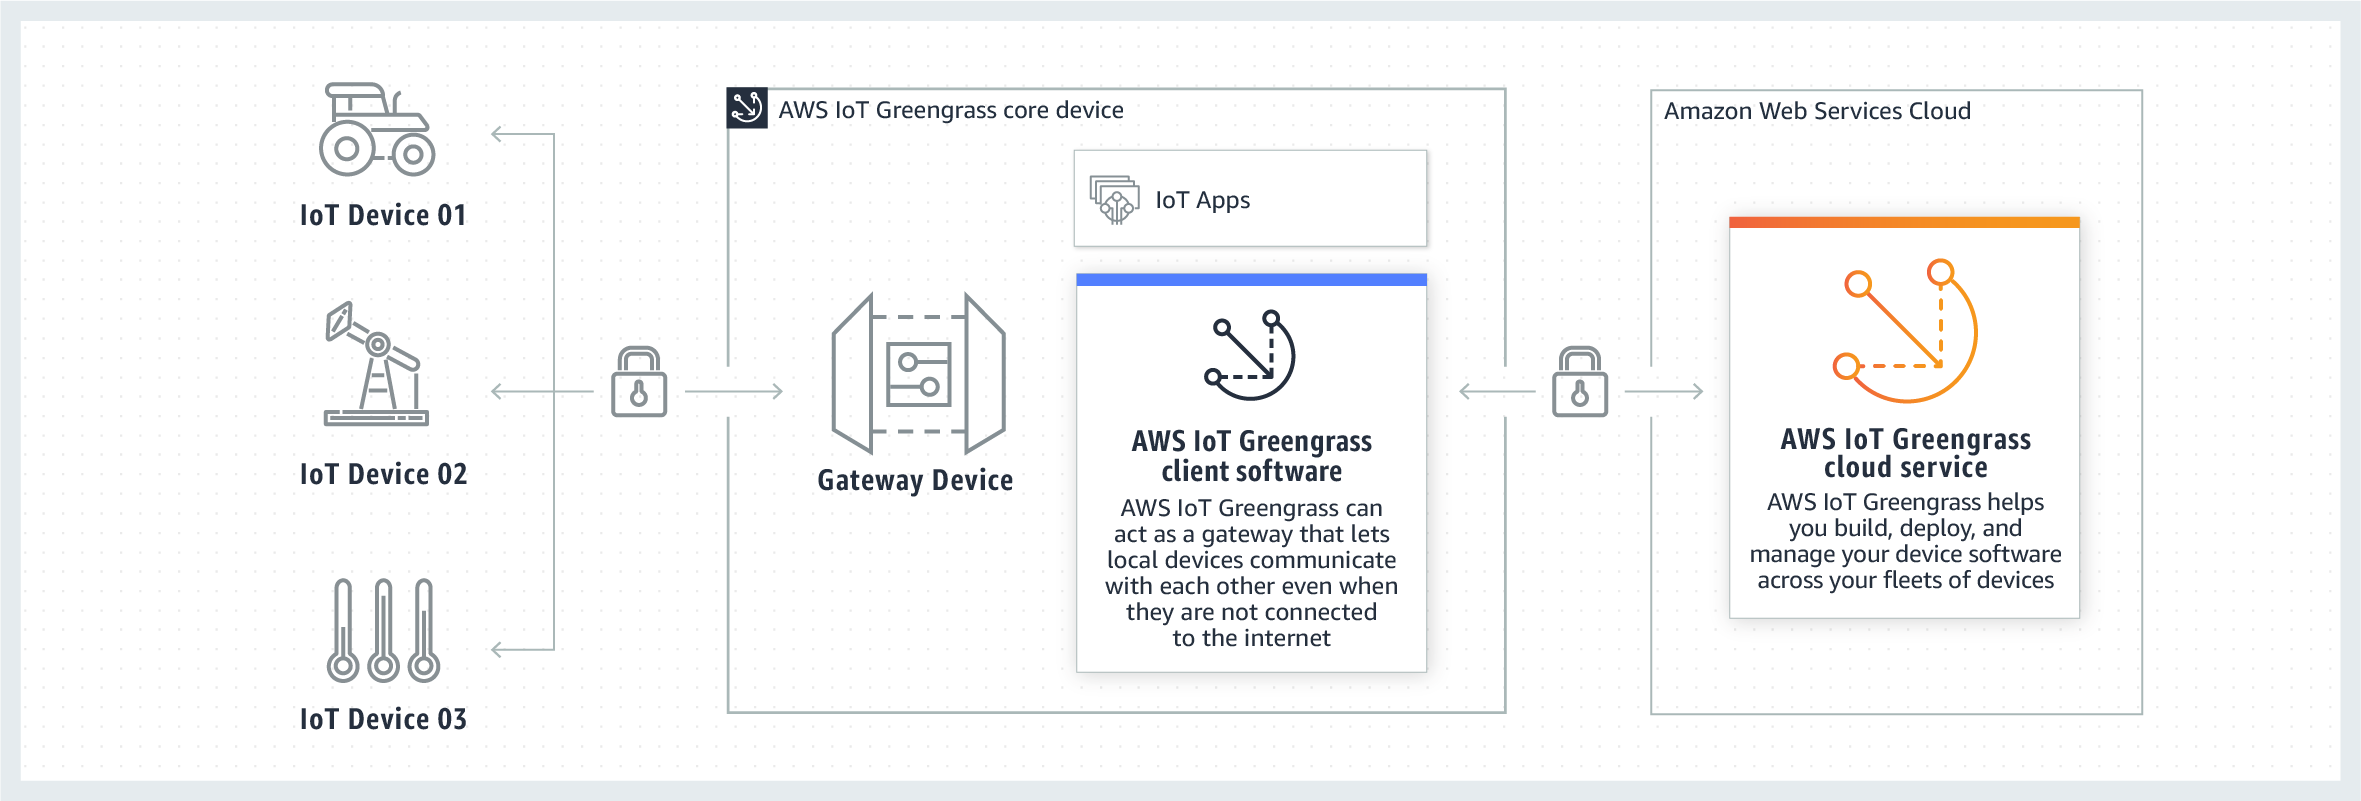 AWS IoT Greengrass Connectors